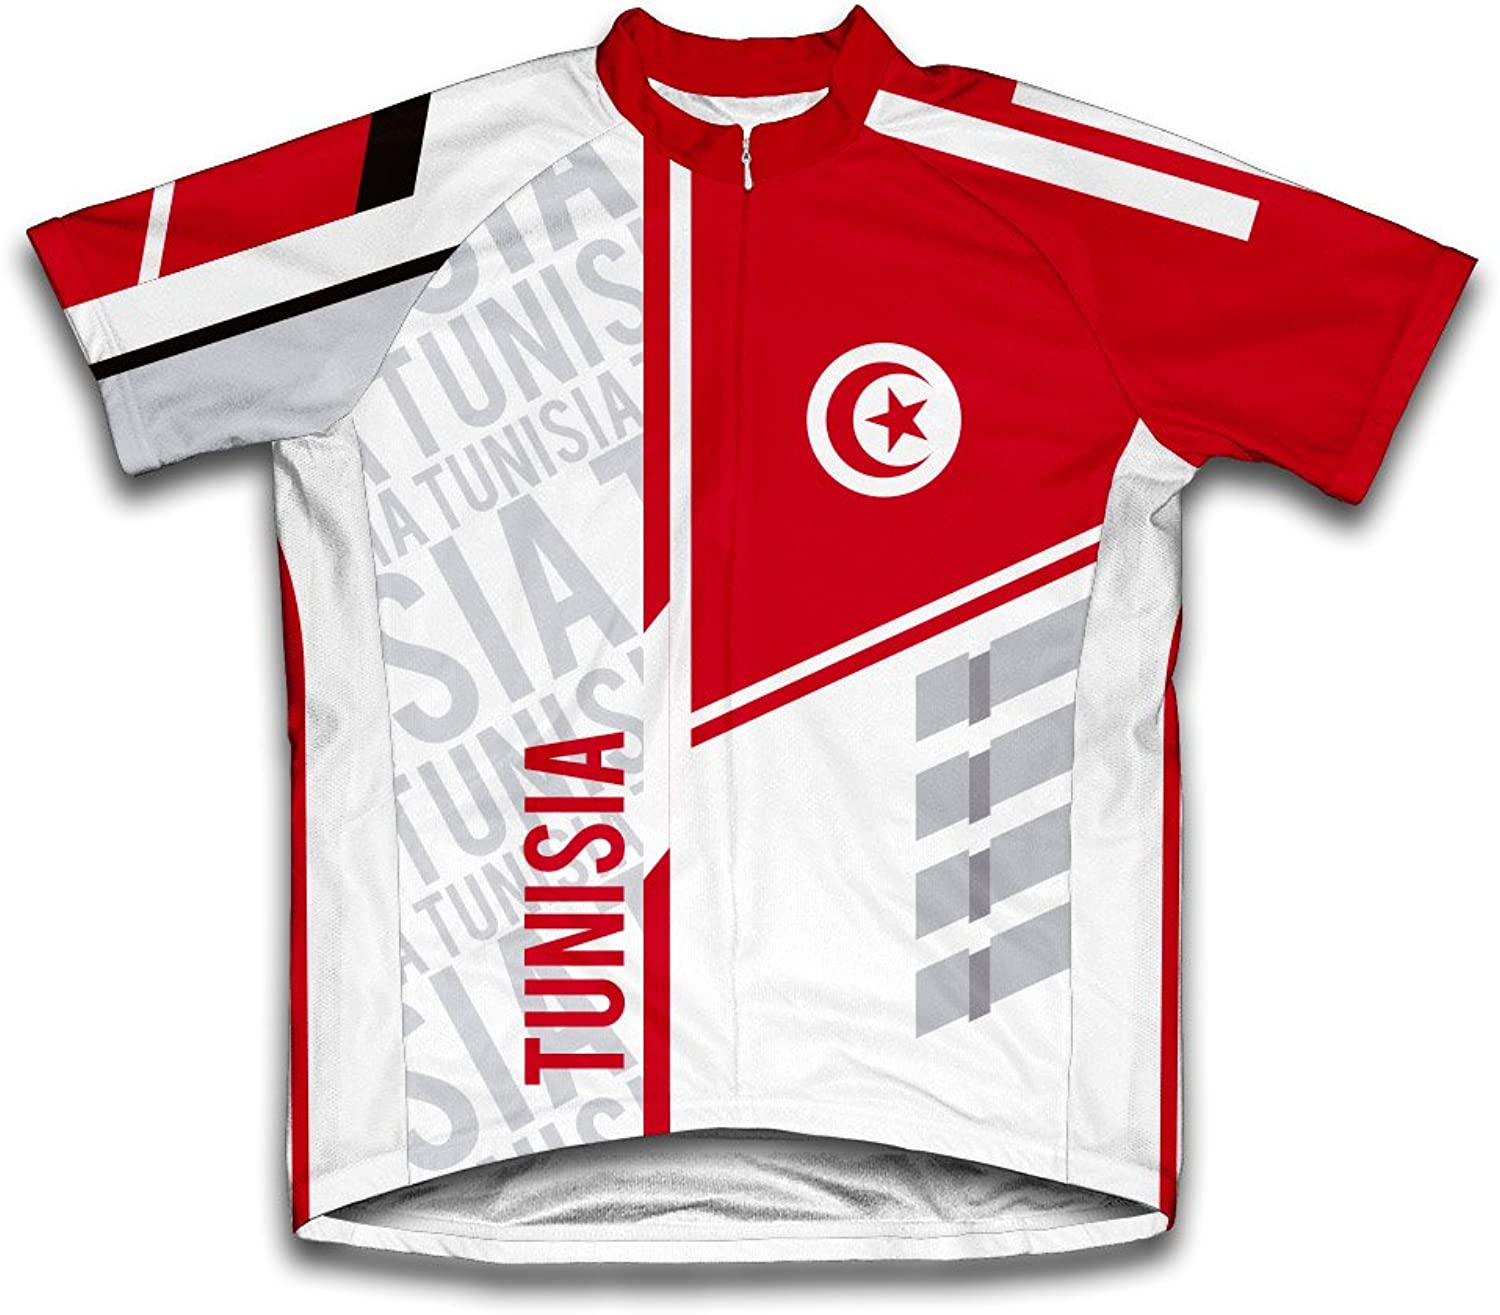 Tunisia ScudoPro Short Sleeve Cycling Jersey for Women